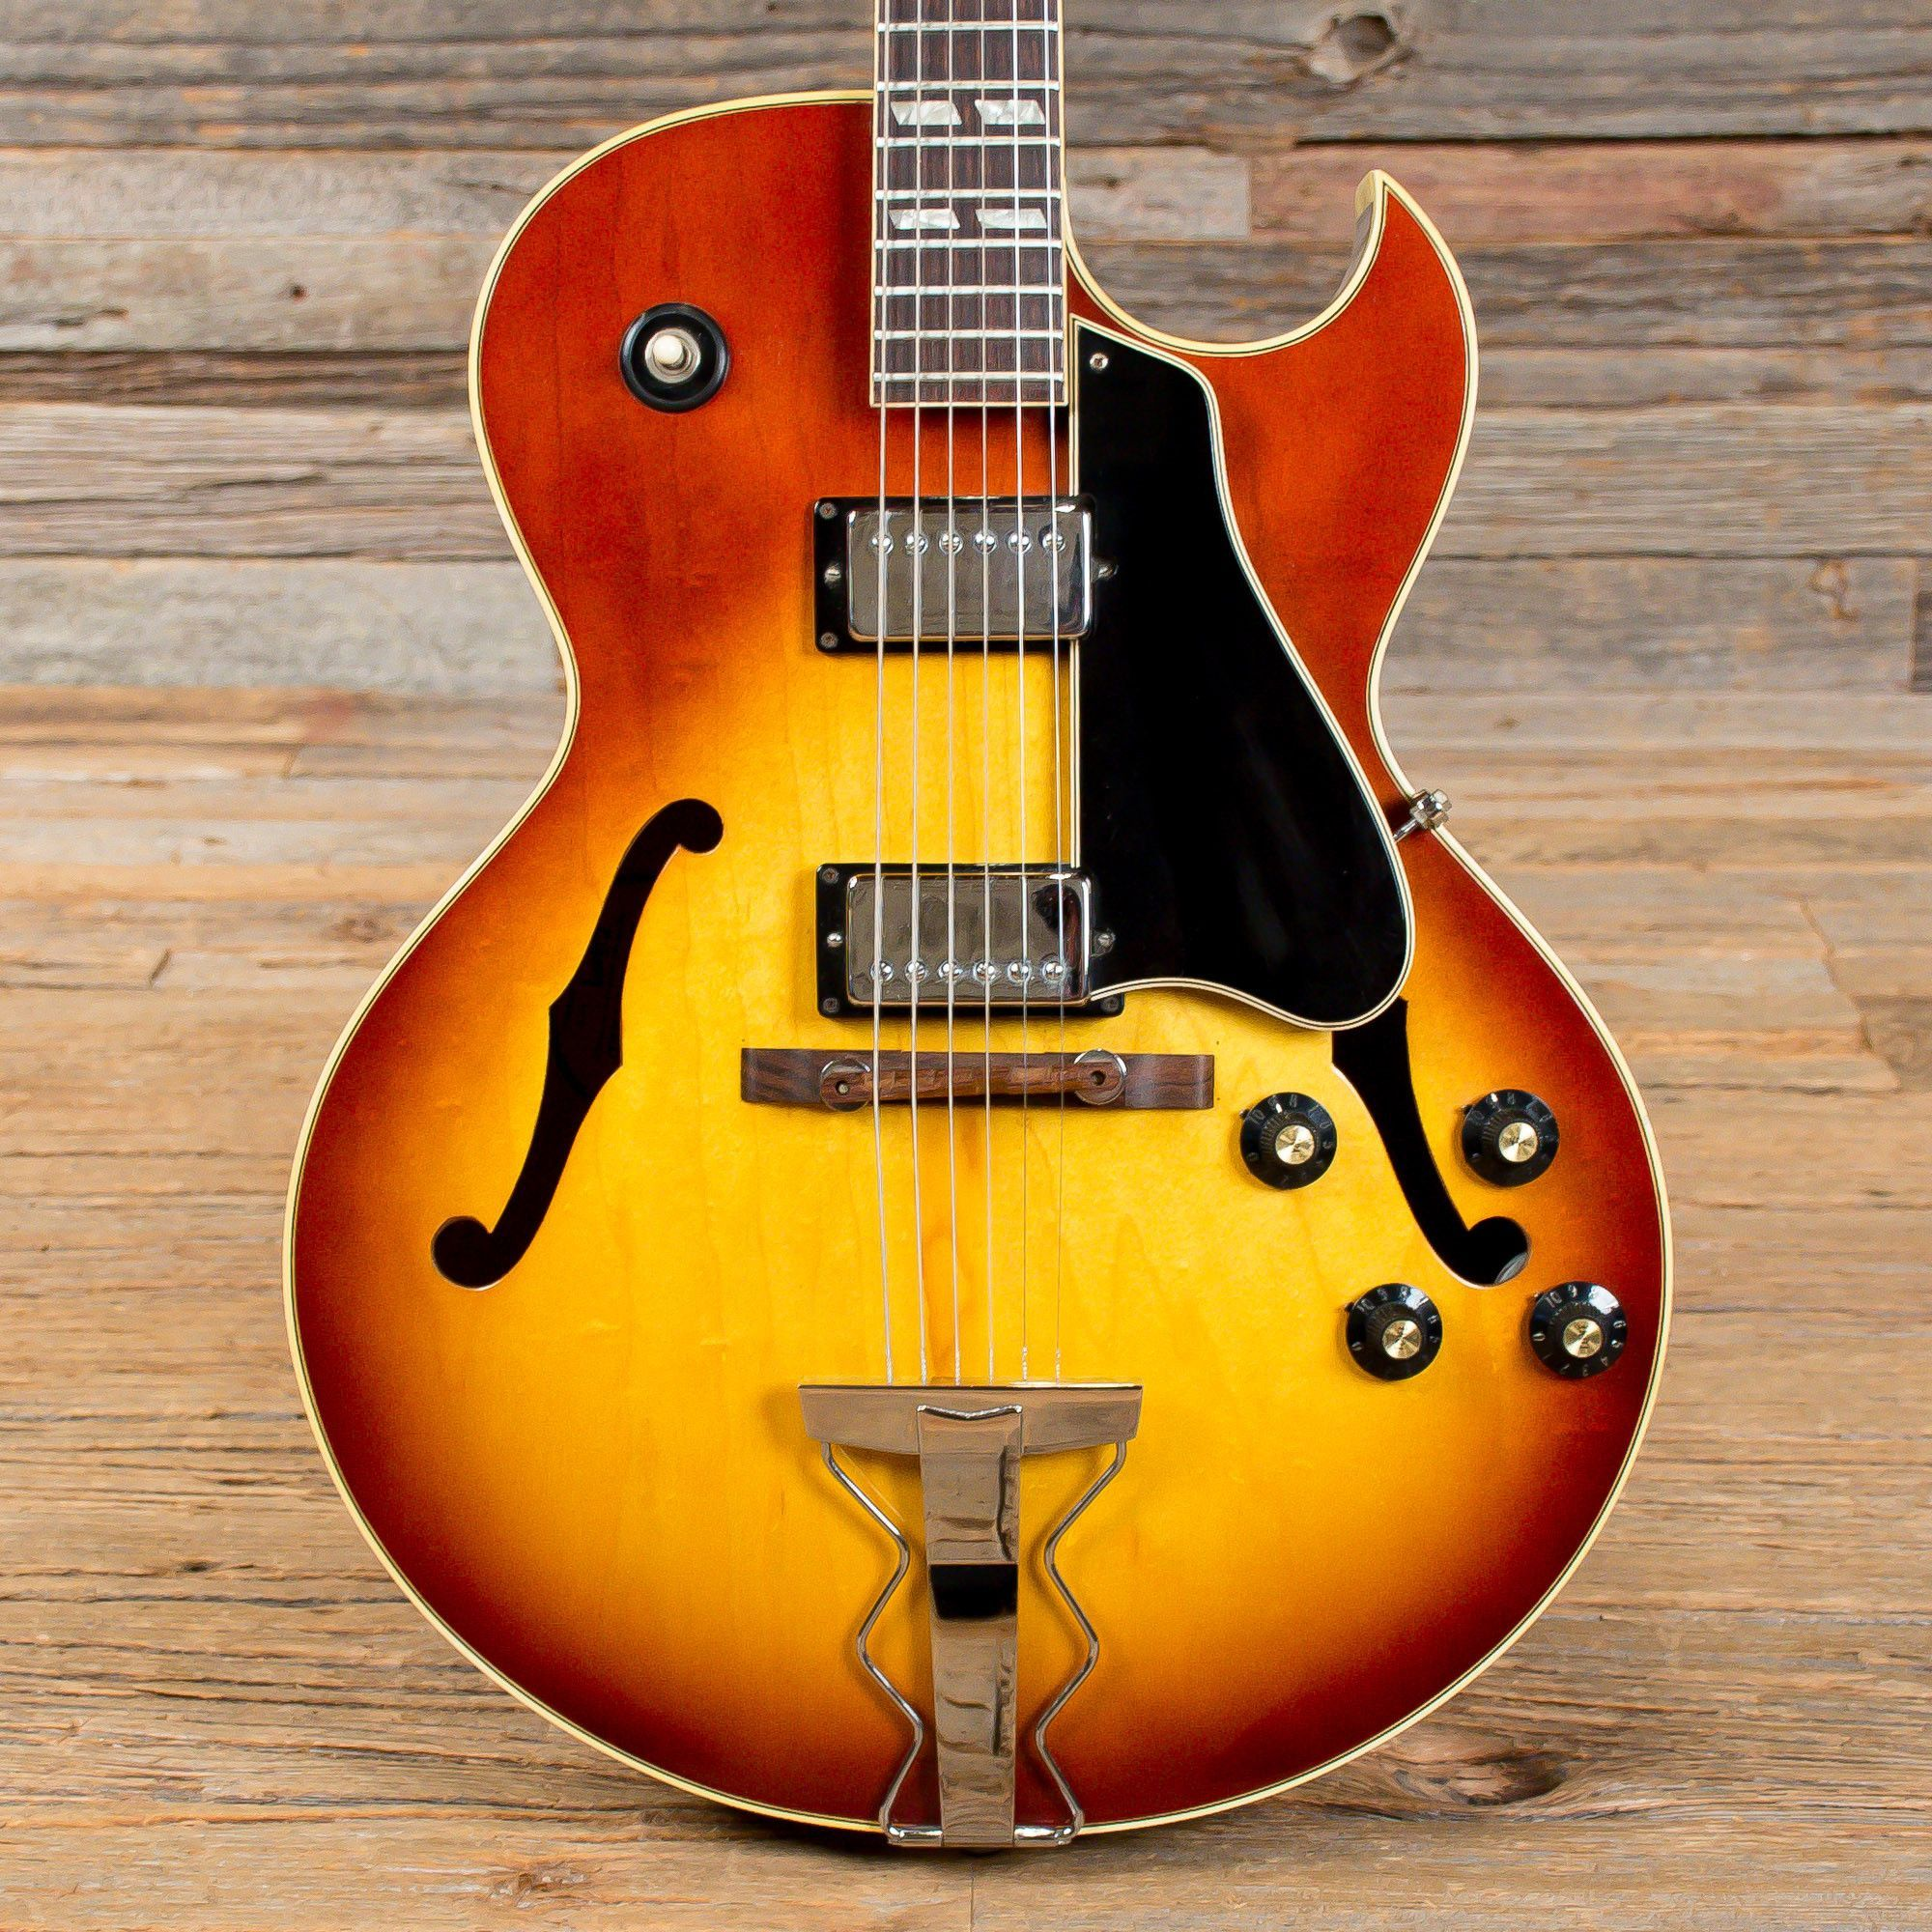 Gibson ES175 Sunburst 1969 (s303) (With images